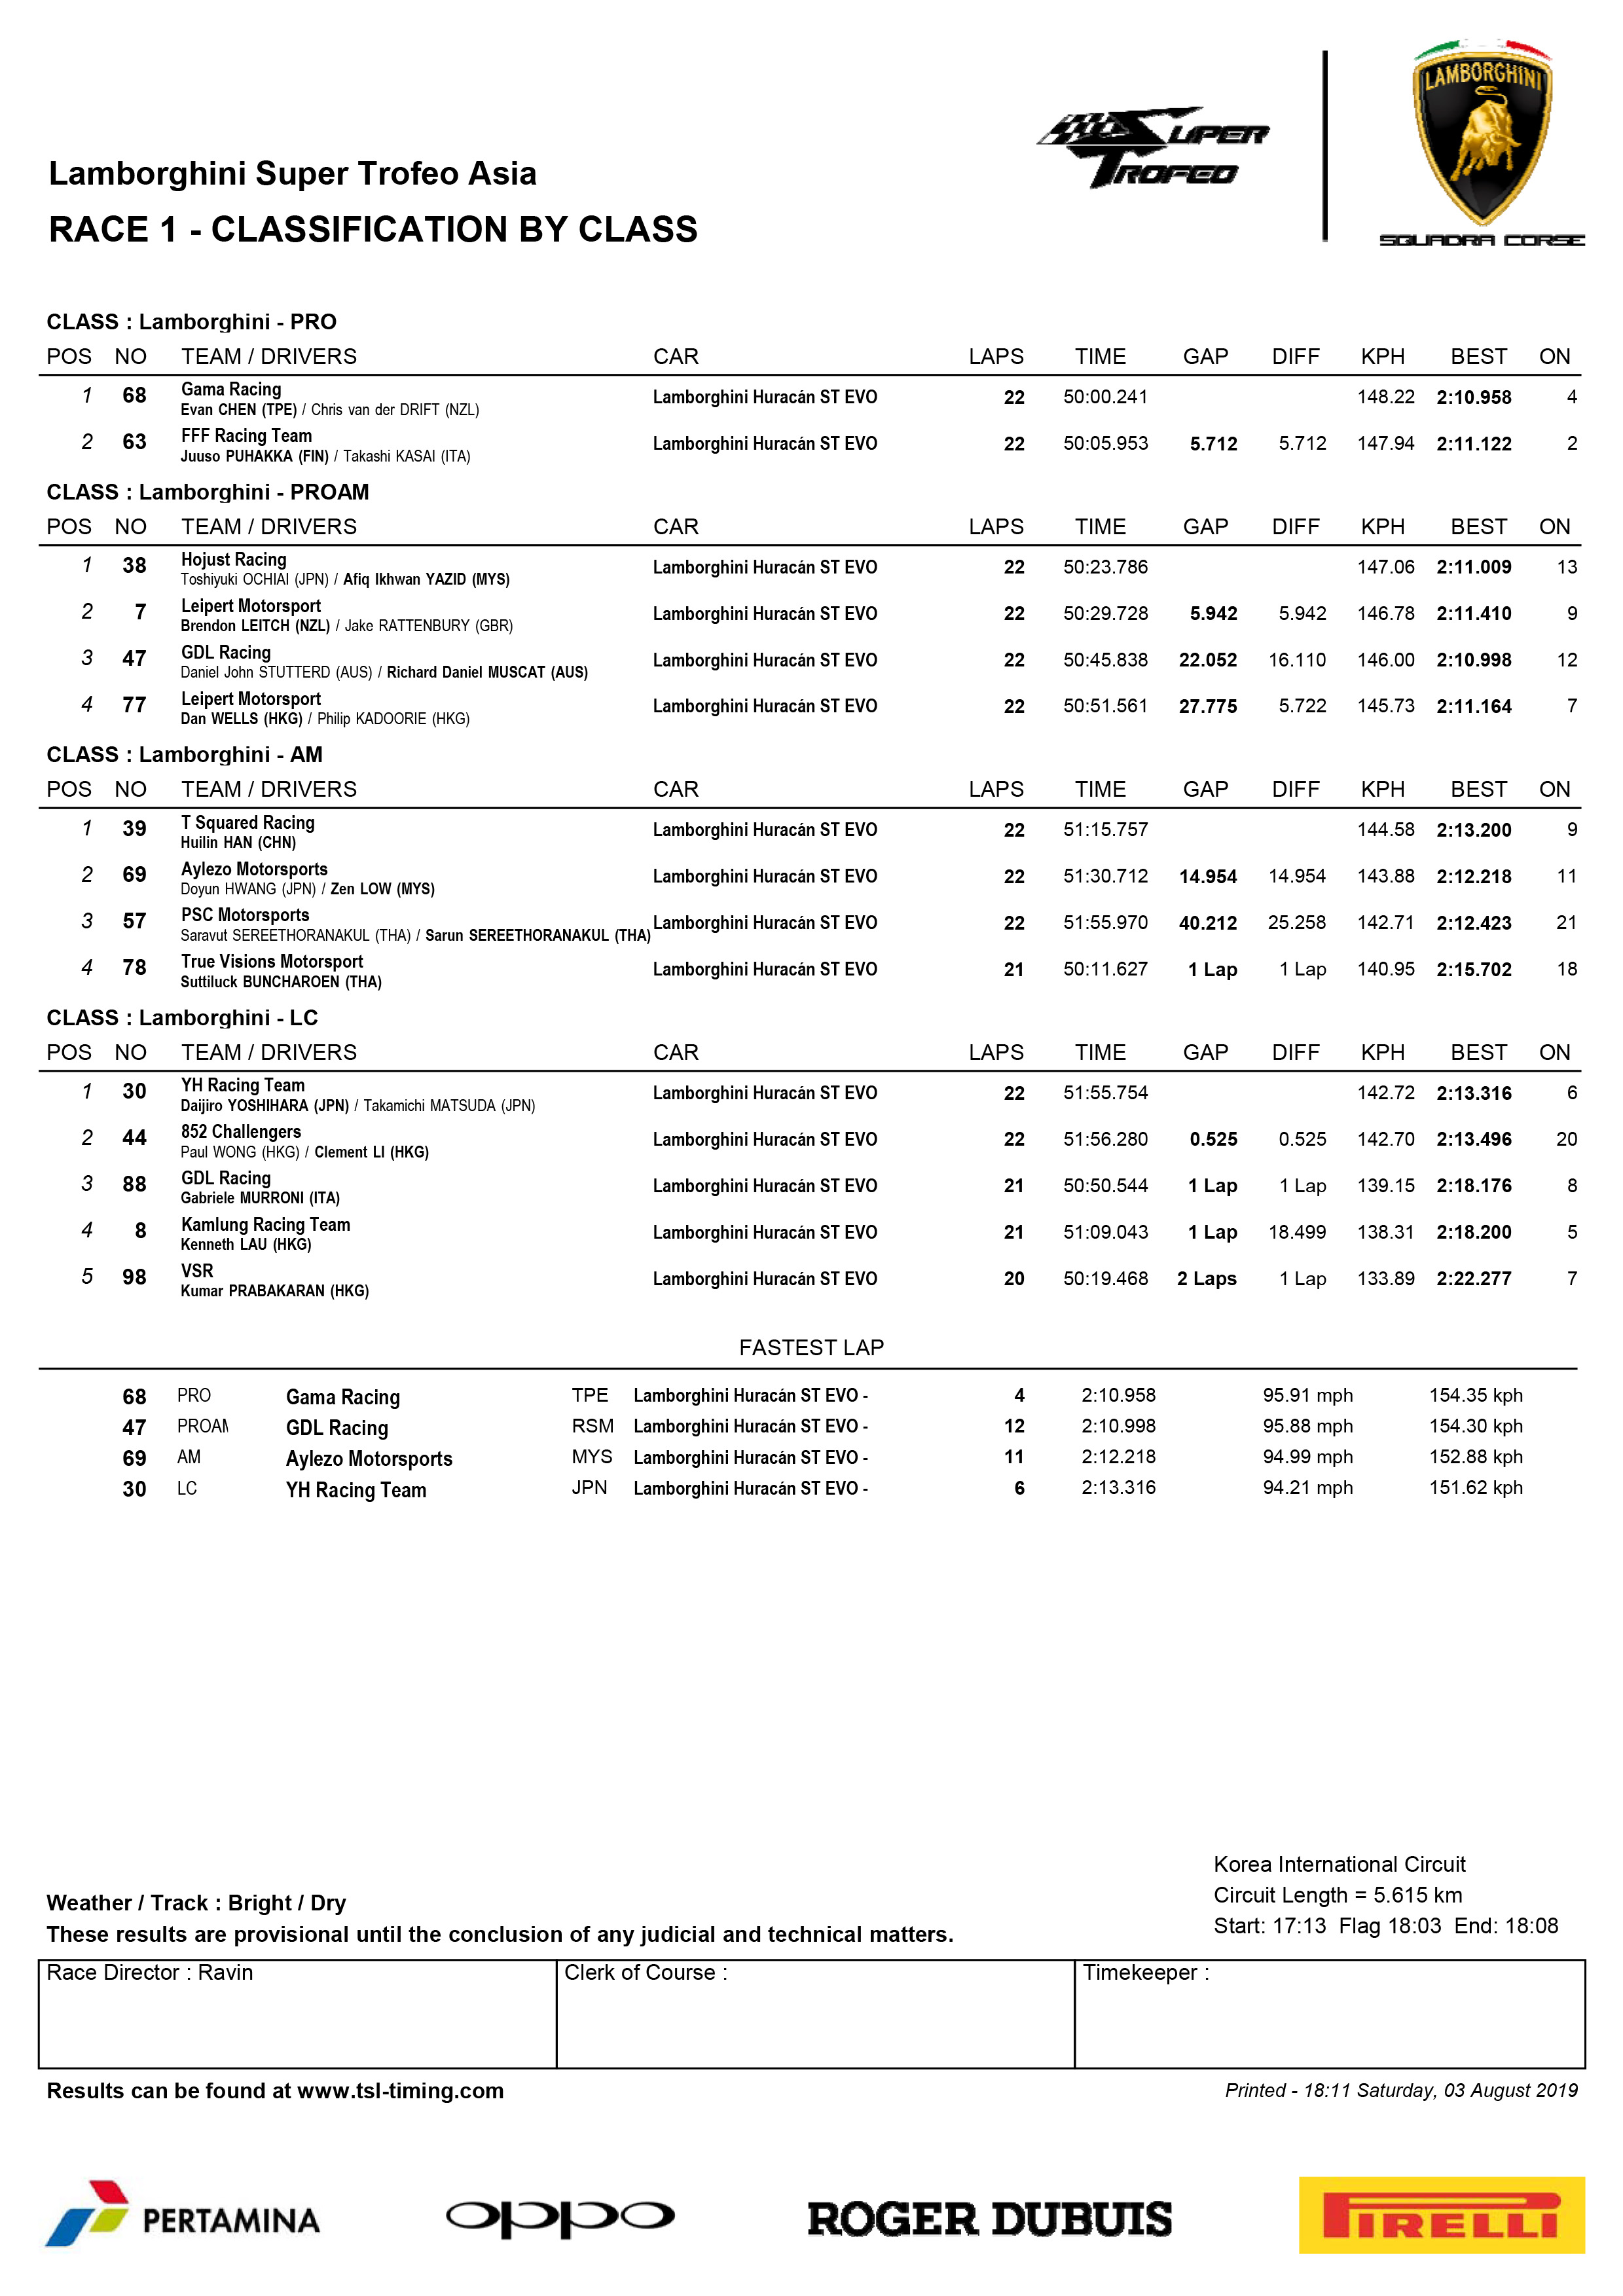 Lamborghini Super Trofeo Asia Classification By Class